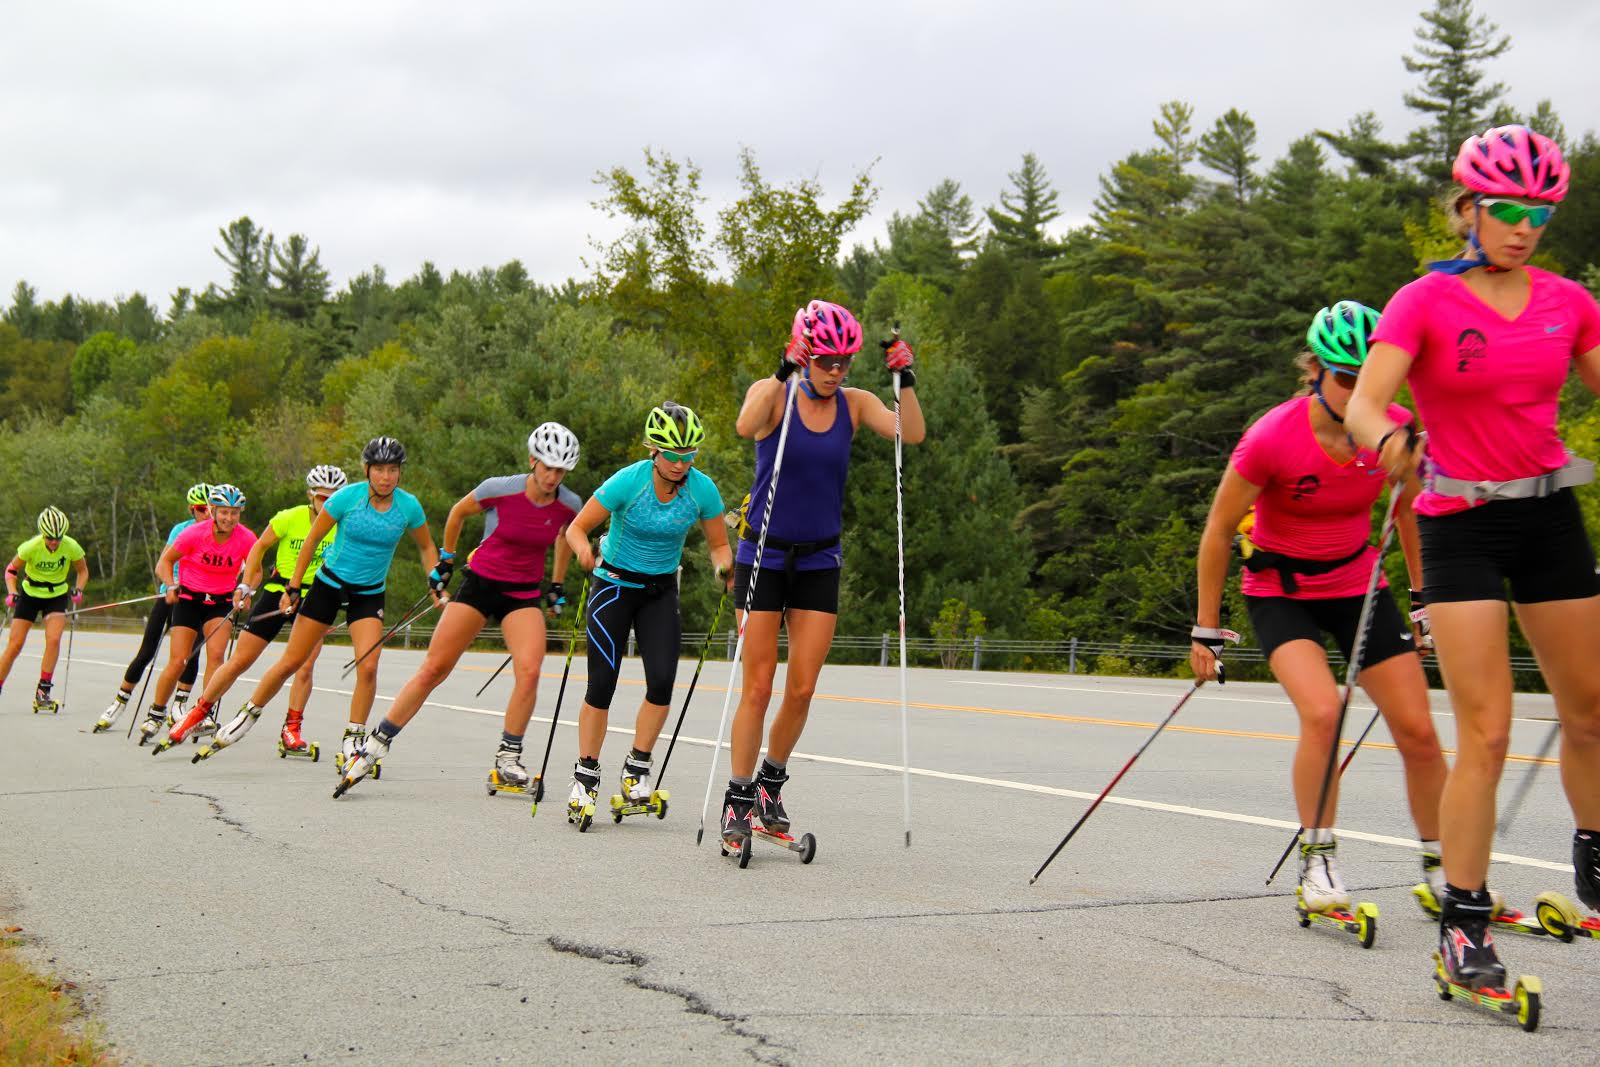 Annie Hart prospects Annie Pokorny, Mary Rose, Jessie Diggins, Deedra Irwin, Katharine Ogden, Kelsey Phinney, Hannah Halvorsen, Sophie Caldwell, and Hailey Swirbul in the course of a rollerski session close to Lake Placid, N.Y. (Photograph: Bryan Fish)